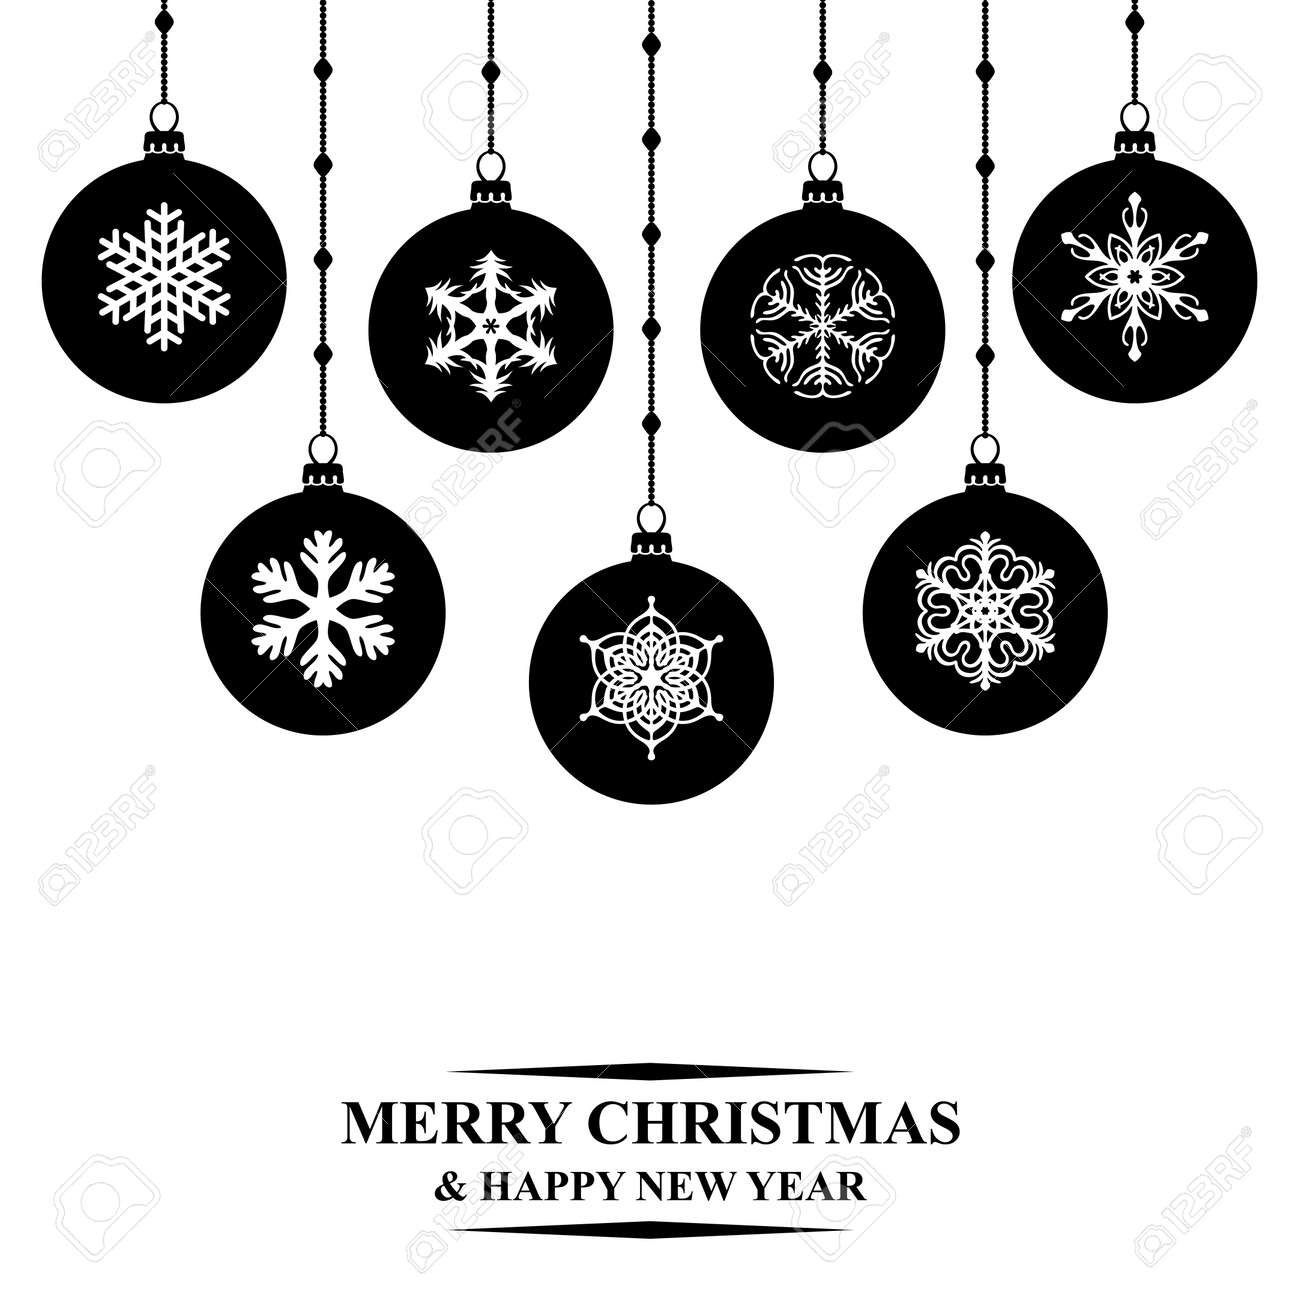 Hanging Christmas Ornaments Silhouette.Vector Illustrations Of Silhouette Christmas Balls Hanging On